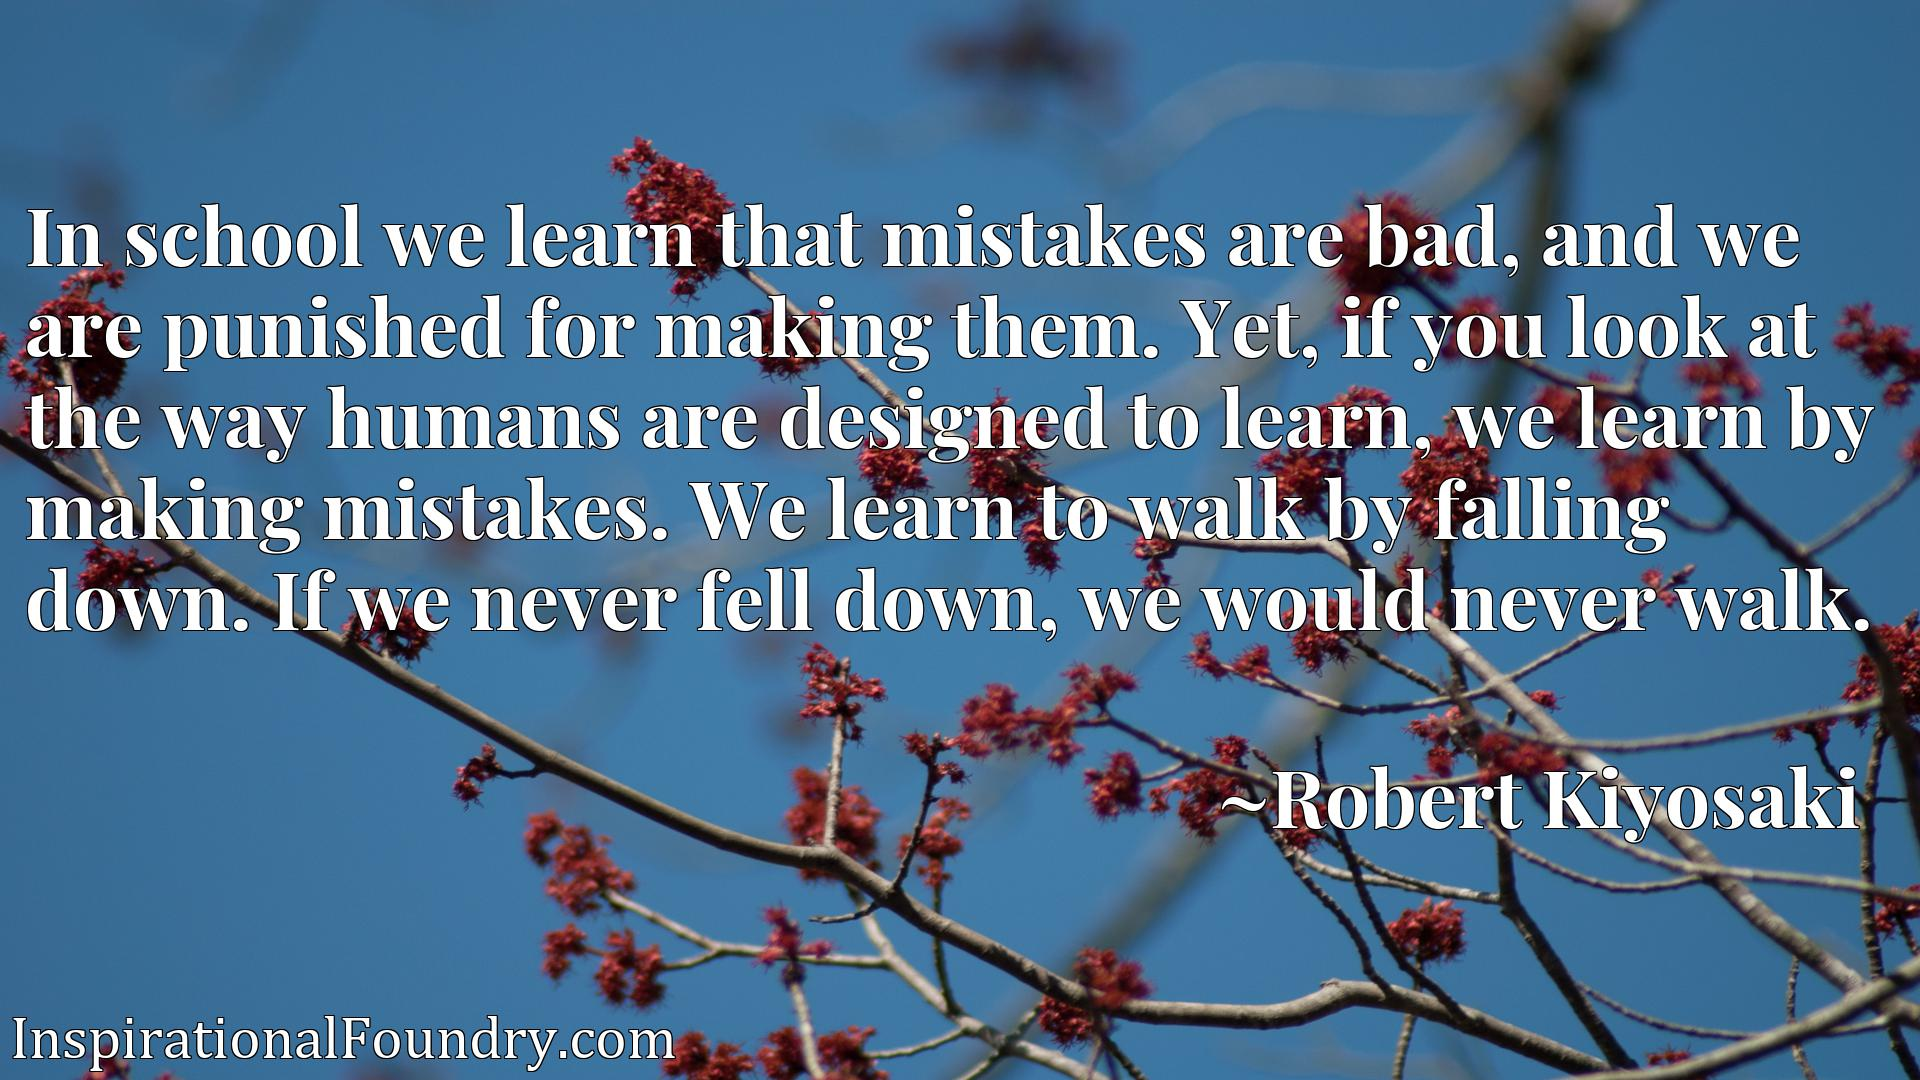 In school we learn that mistakes are bad, and we are punished for making them. Yet, if you look at the way humans are designed to learn, we learn by making mistakes. We learn to walk by falling down. If we never fell down, we would never walk.